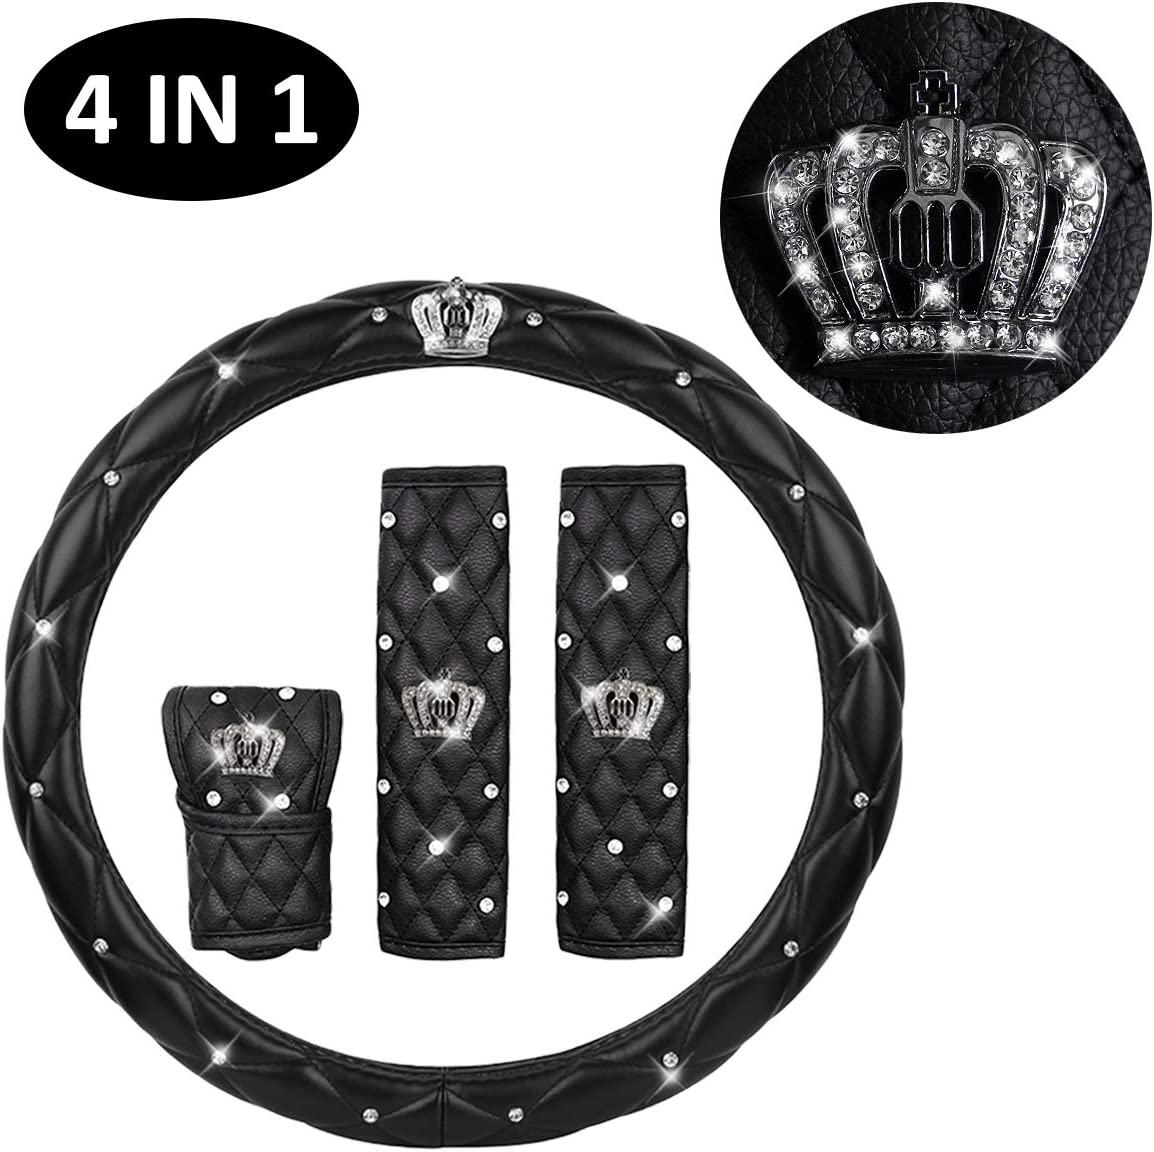 IYOYI Universal Protection Cover Set : Bling Steering Wheel Cover for Woman 2PCS Car Seat Belt Shouldads Gear Shift Cover Bling Crown Decor Car Accessories (4PCS-Leather)